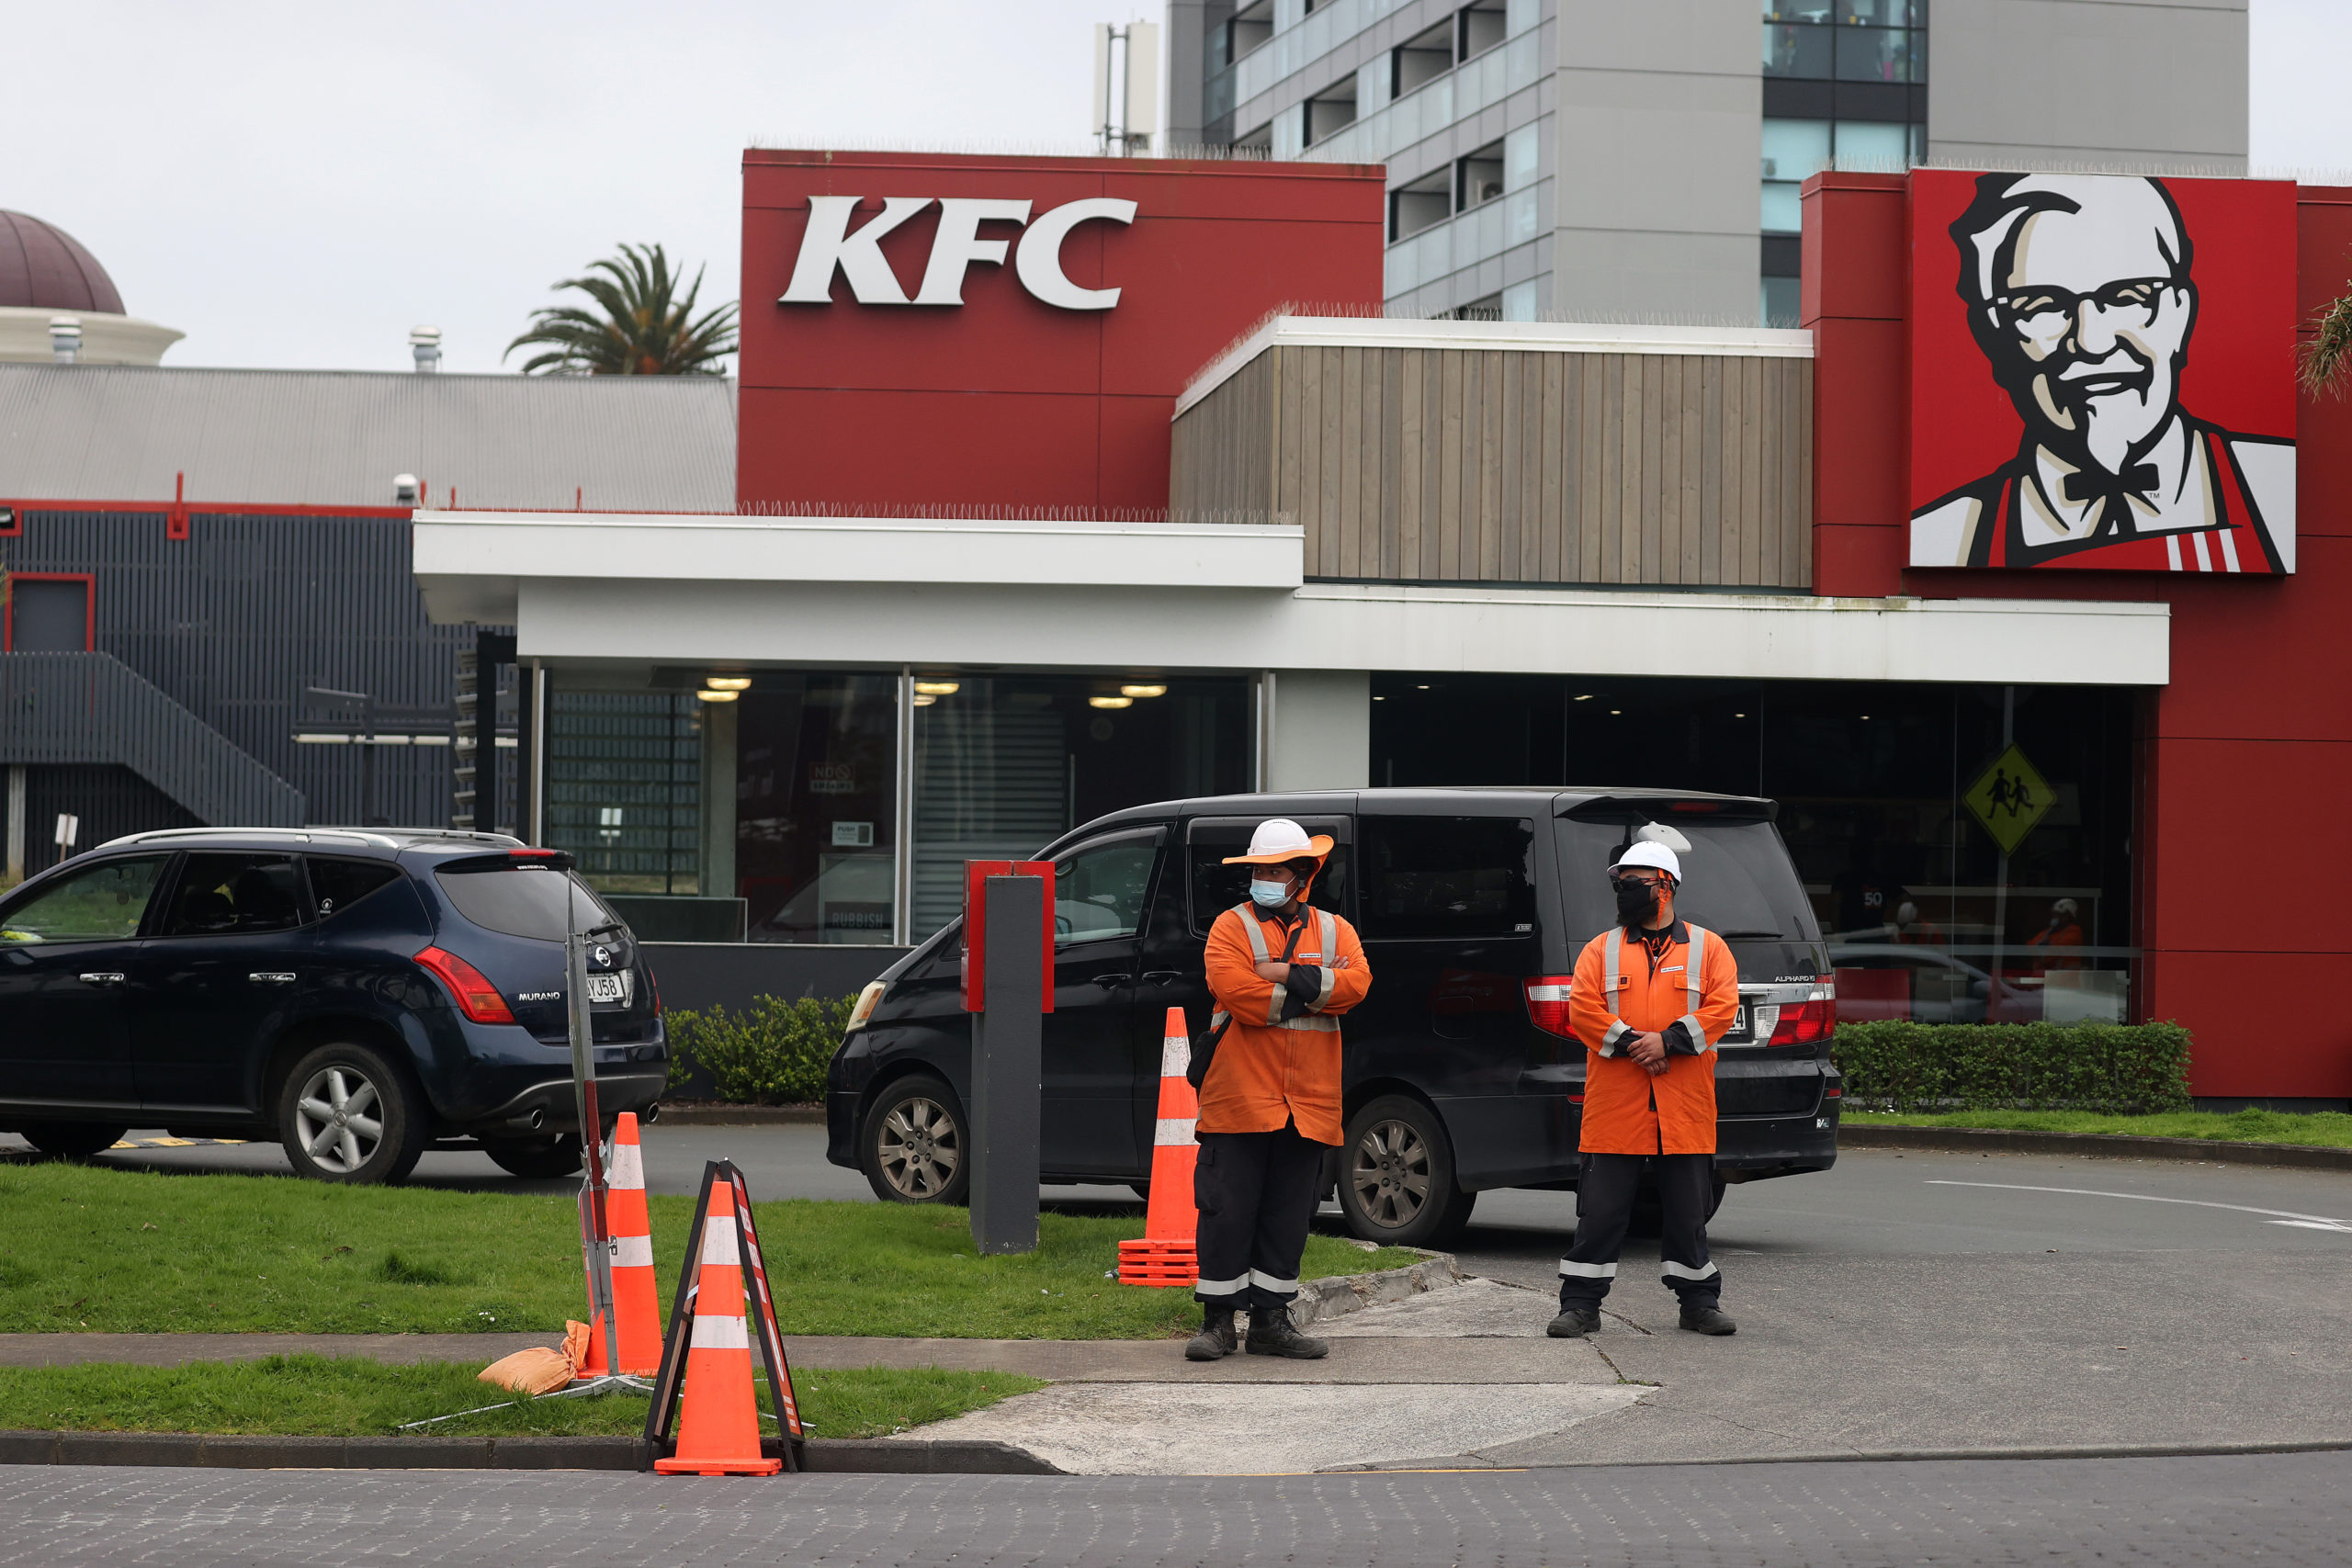 AUCKLAND, NEW ZEALAND - SEPTEMBER 22: Traffic management workers direct a large queue of cars through the KFC drive through in Manukau on September 22, 2021 in Auckland, New Zealand. Restrictions have eased for Auckland residents, with the Greater Auckland area moving to COVID-19 Alert Level 3 settings from 11:59pm on Tuesday. Under Alert Level 3 settings, essential businesses and services can operate but must ensure appropriate physical distancing and contact tracing, with early learning centres and schools to reopen for children up to Year 10 whose parents or caregivers need to return to work. Restaurants and cafes can reopen for takeaway, delivery or drive-through only. The only gatherings allowed under alert level 3 are weddings and civil union ceremonies, funerals and tangihanga, with up to 10 people only. People must remain in their household bubbles when not at work or school and masks remain mandatory outside of the home. (Photo by Phil Walter/Getty Images)